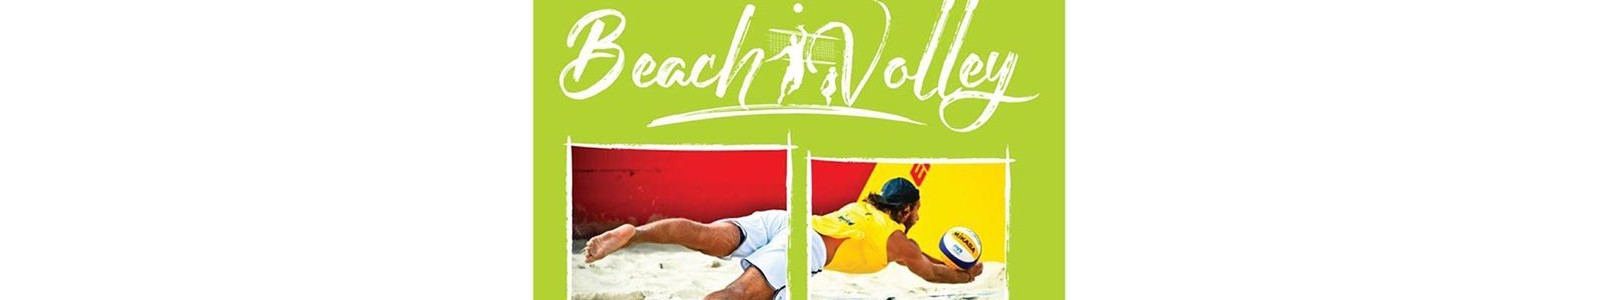 Vignette championnat de france beach volley